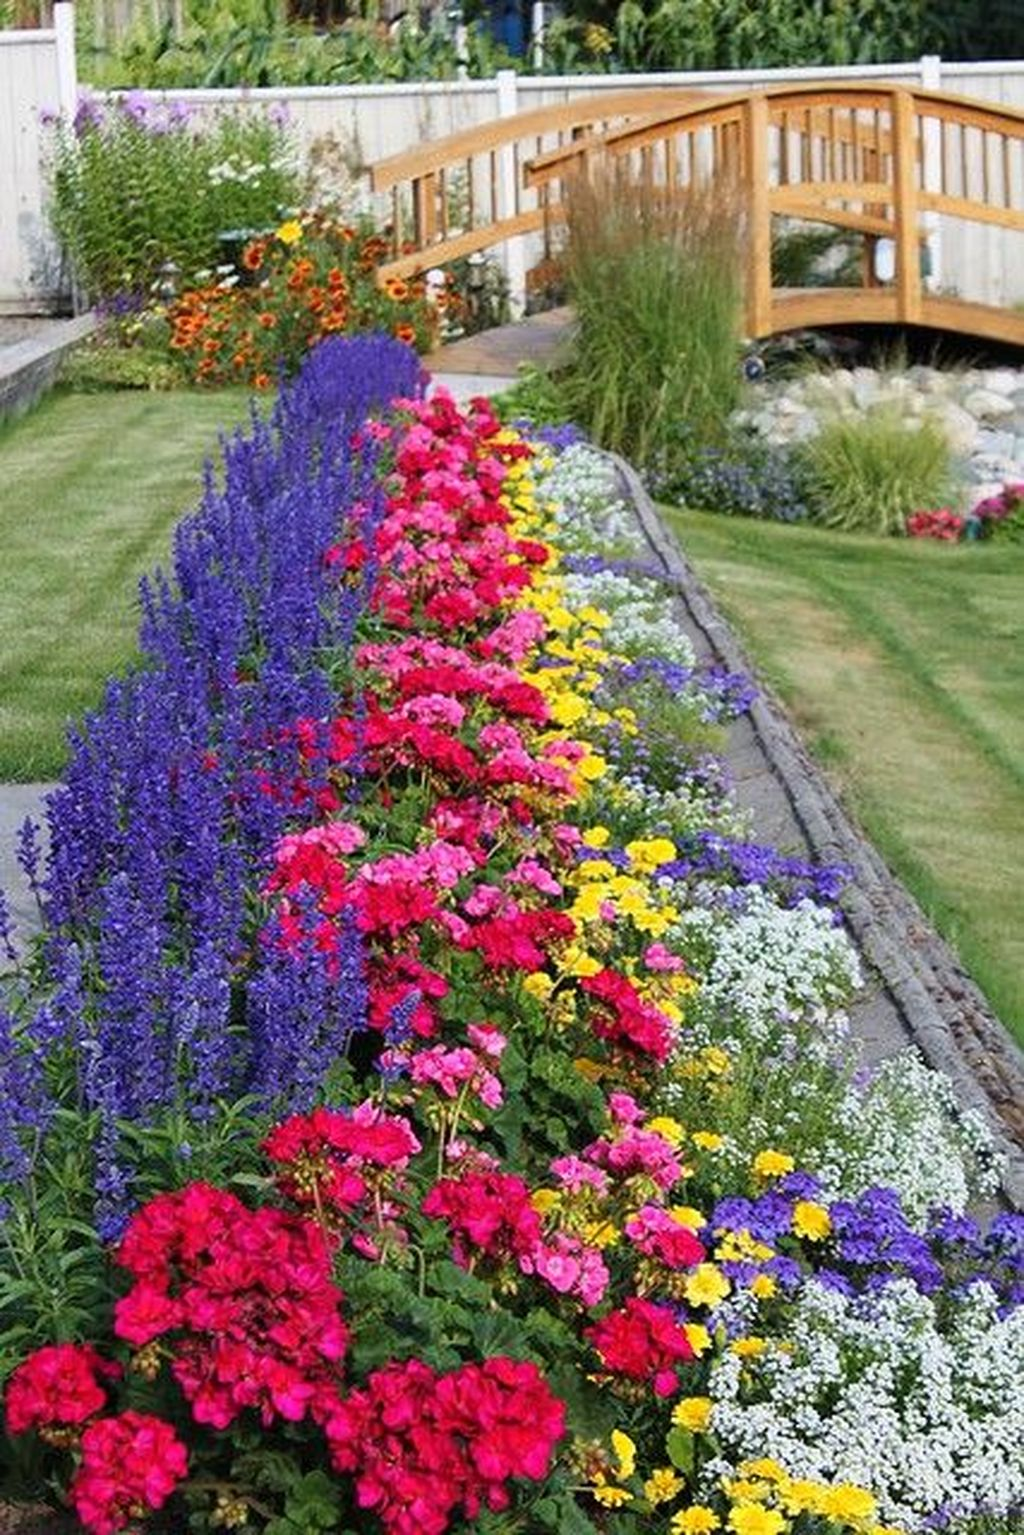 Stunning Backyard Flower Garden Ideas You Should Copy Now 02